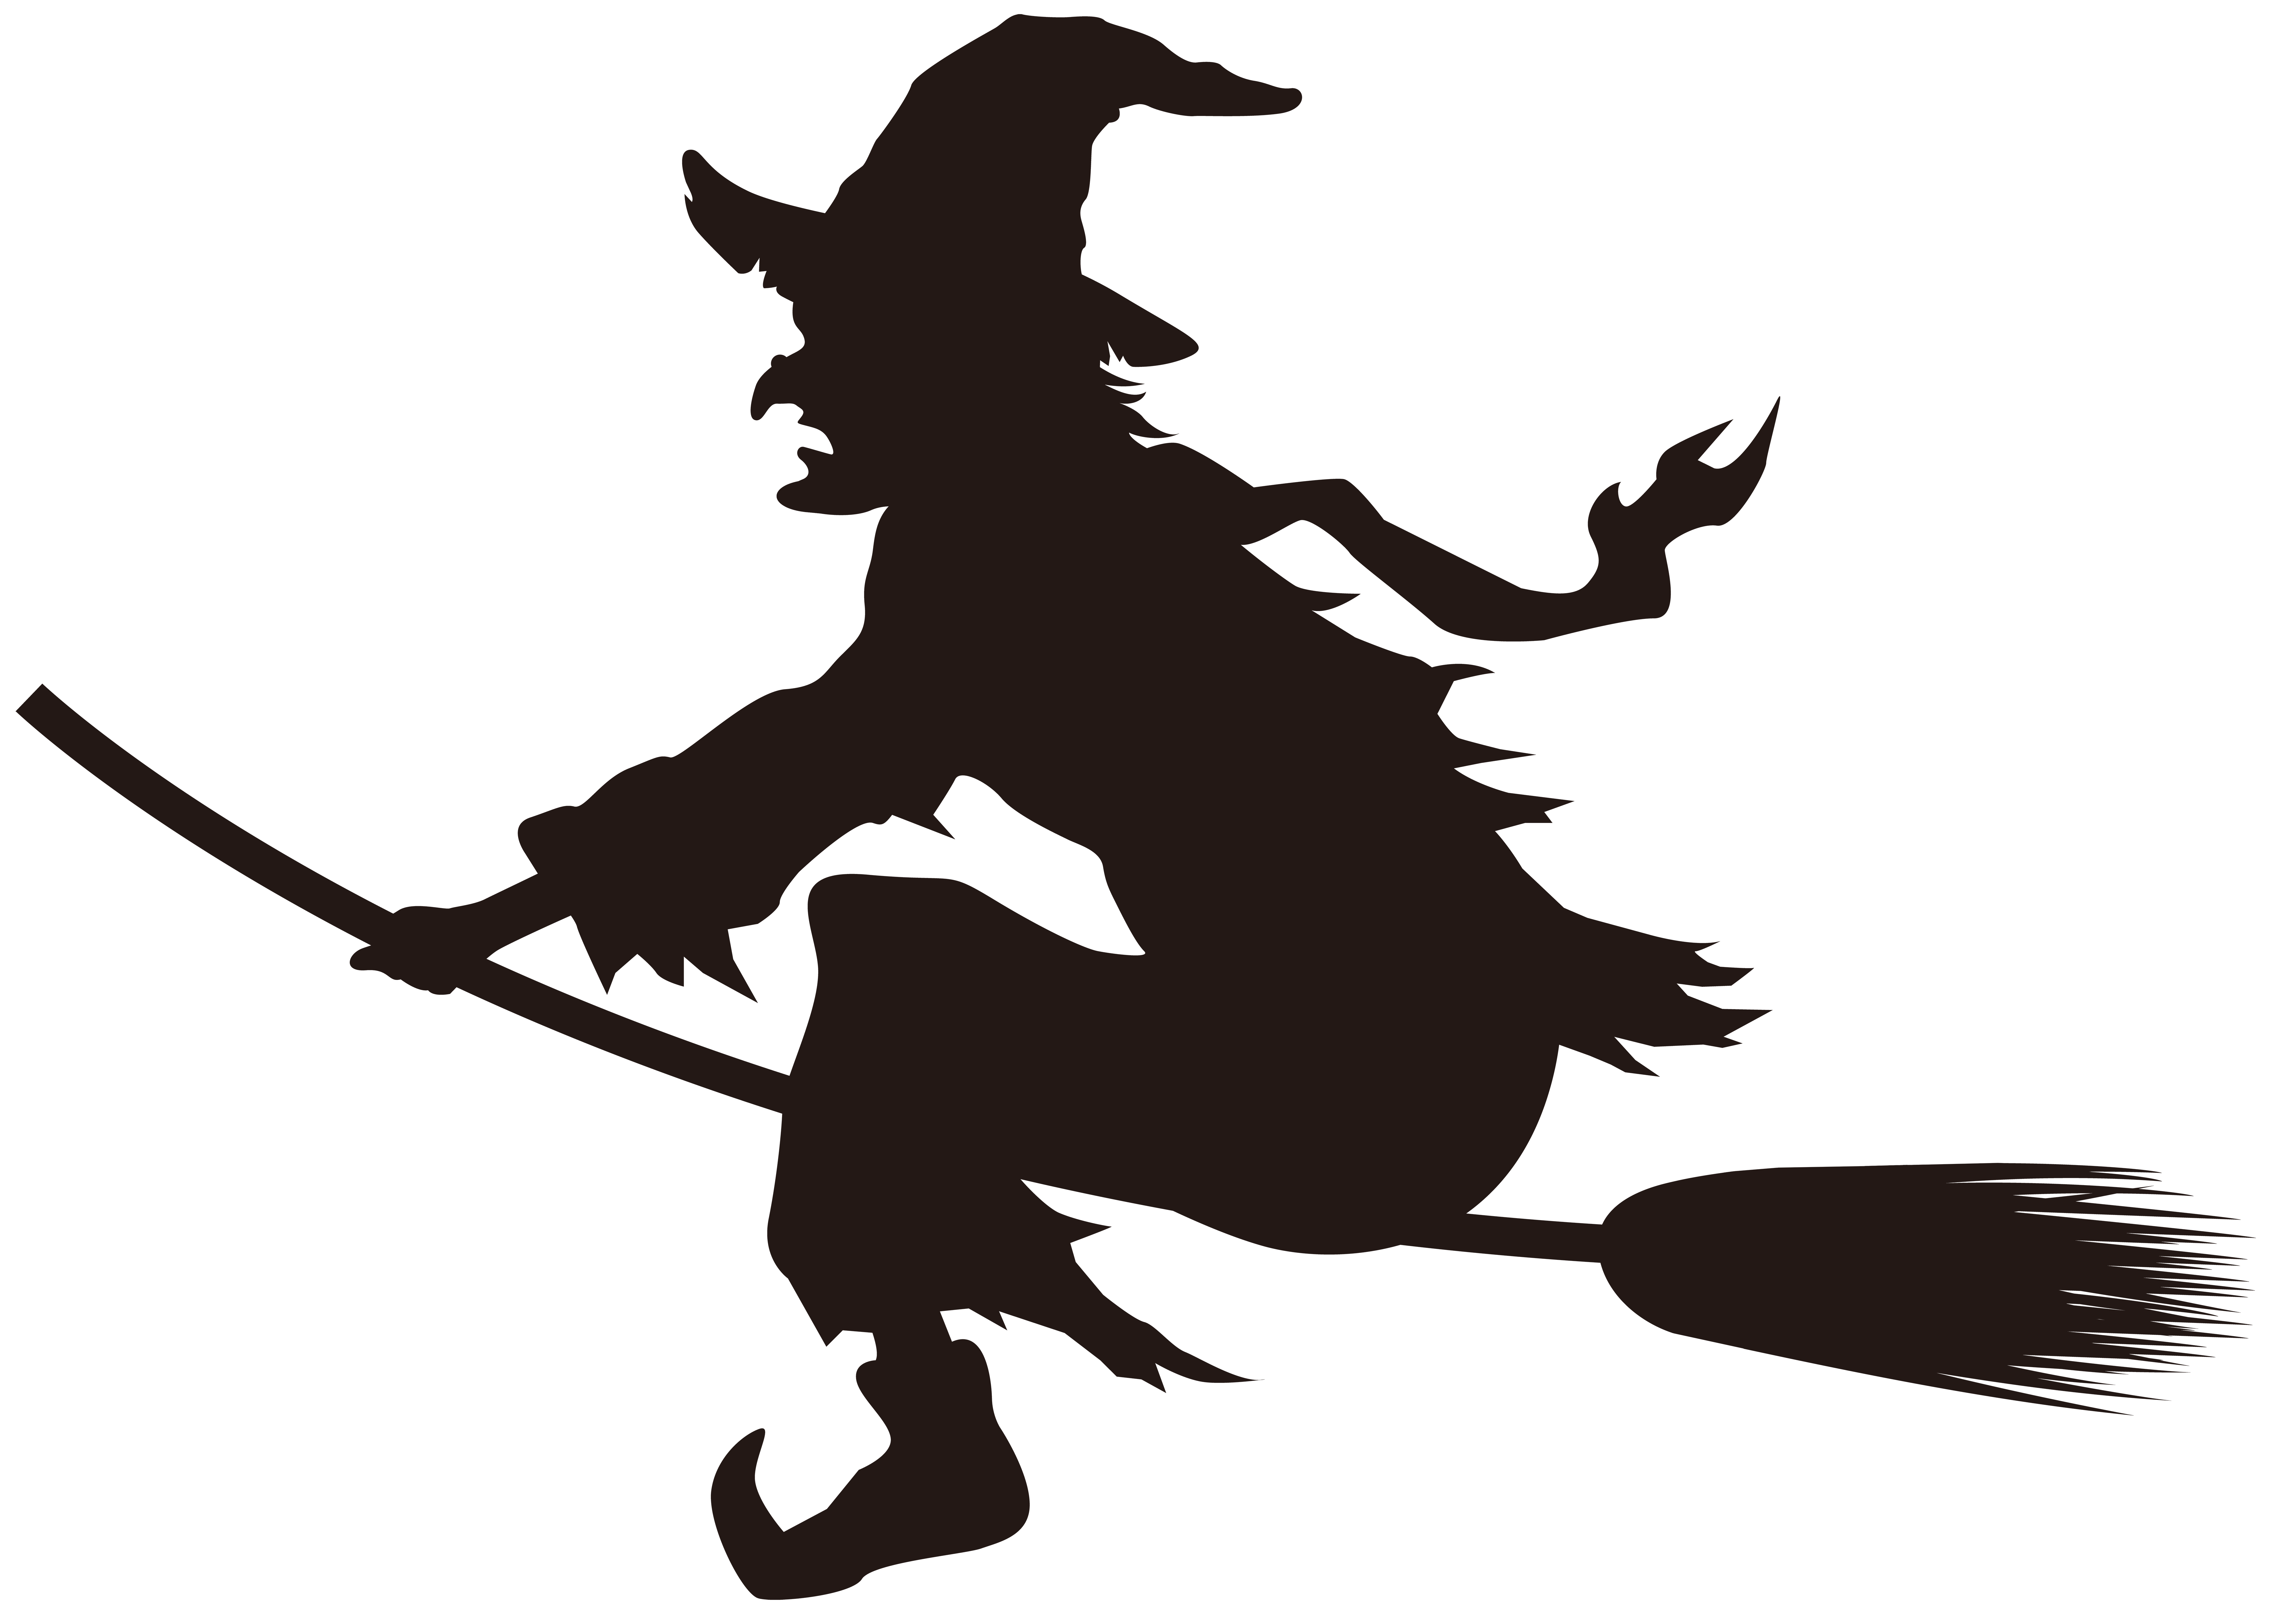 8000x5637 Halloween Witch On Broom Silhouette Clip Art Image Gallery